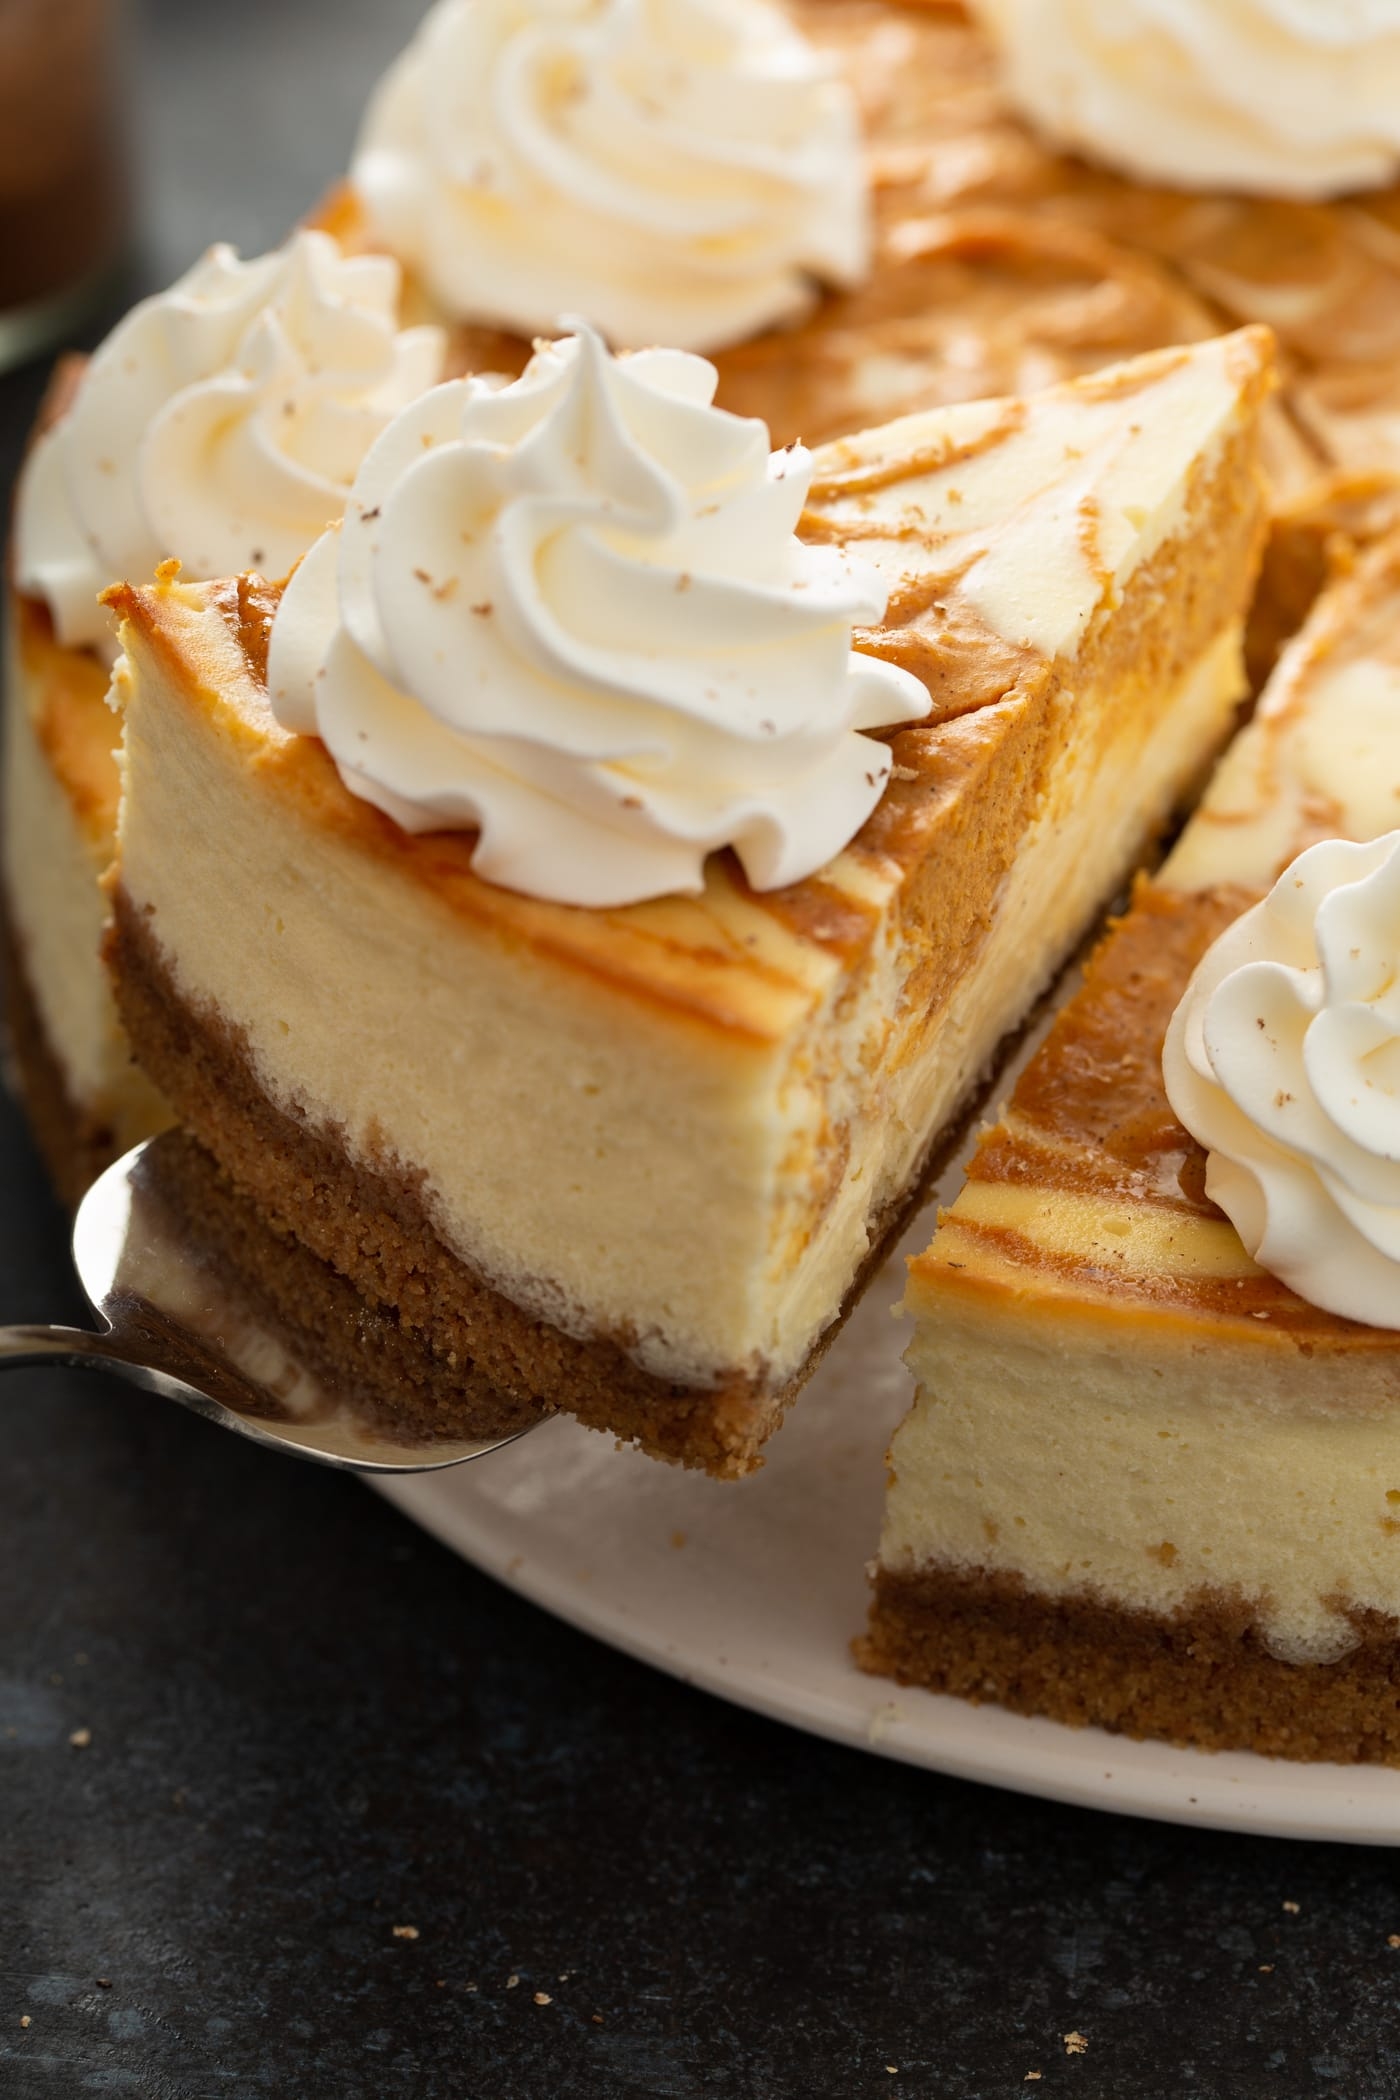 A slice of swirled pumpkin cheesecake being lifted from the whole cheesecake. It has a graham cracker crust and pumpkin filling is swirled into the cheesecake. A dollop of whipped cream is on top.